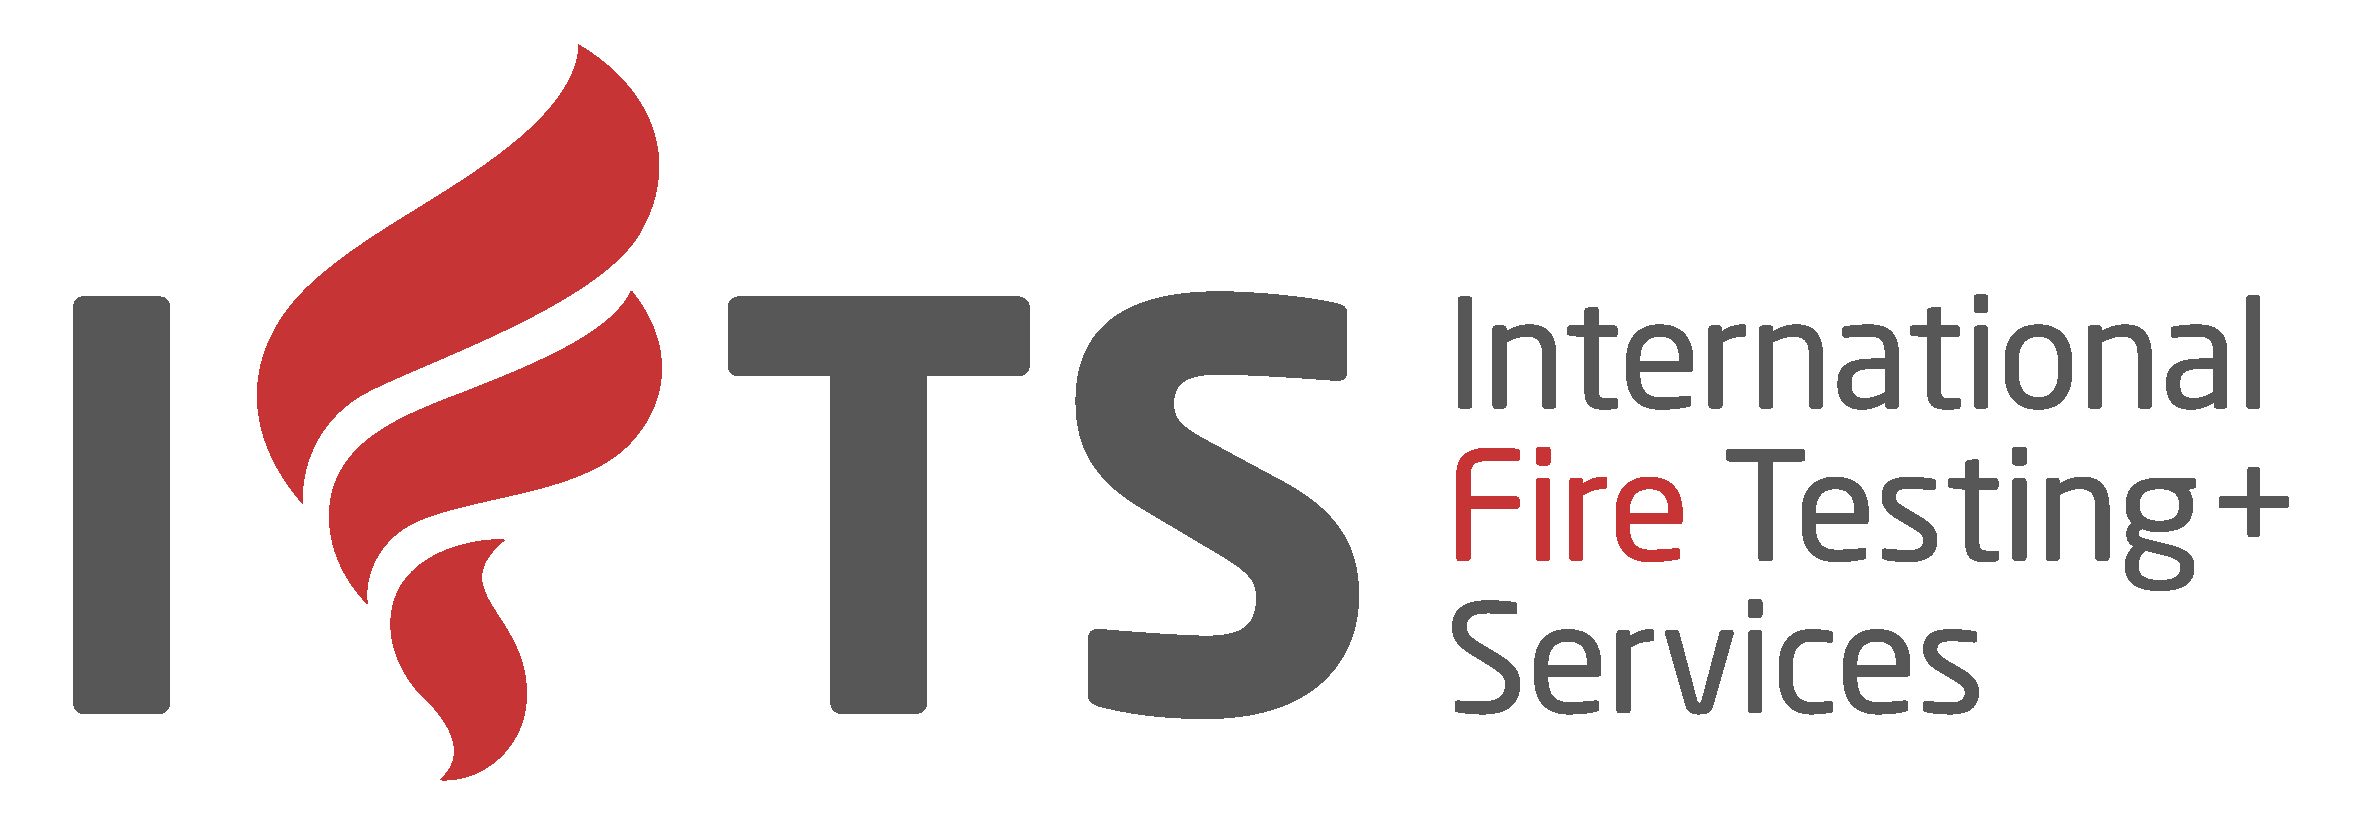 IFTS-International Fire Testing + Services